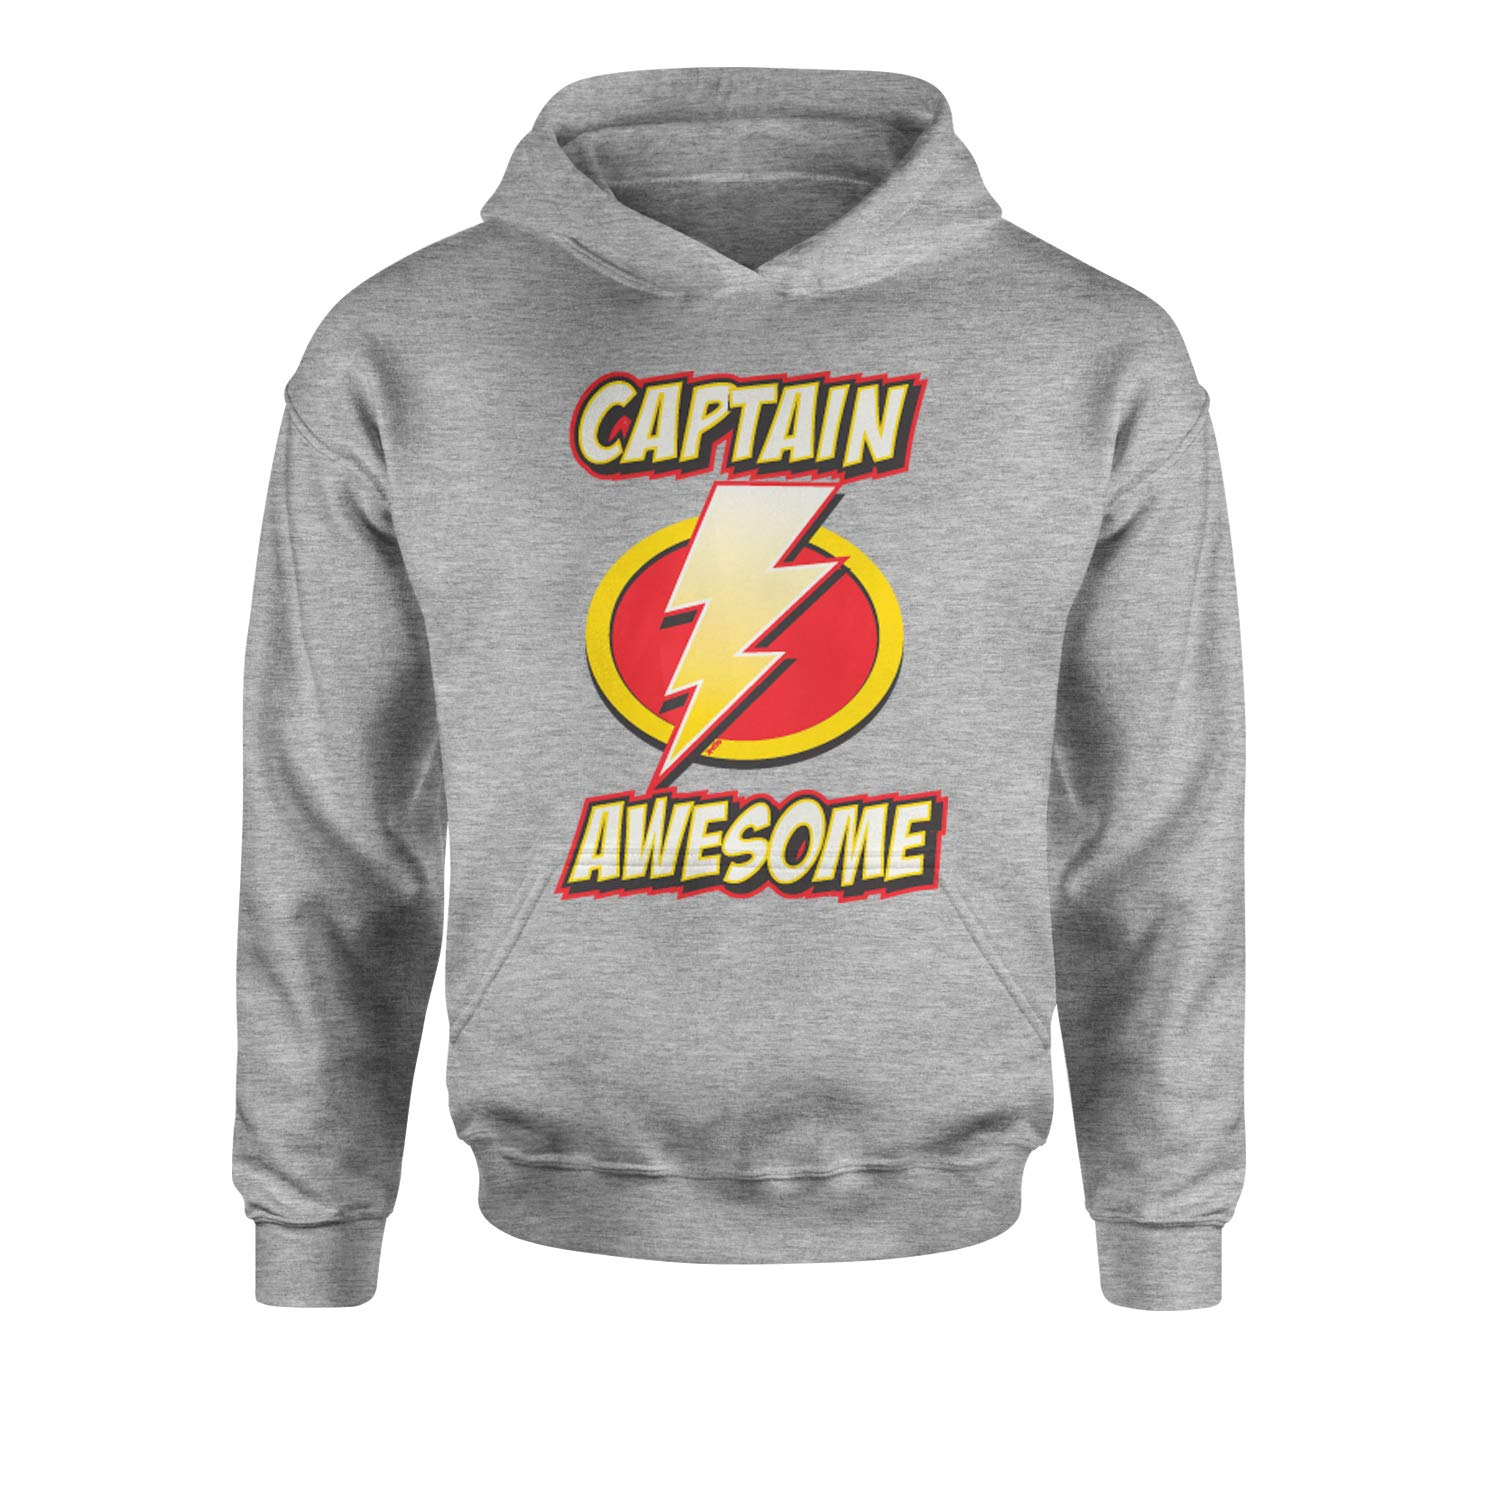 Expression Tees Captain Awesome Youth-Sized Hoodie